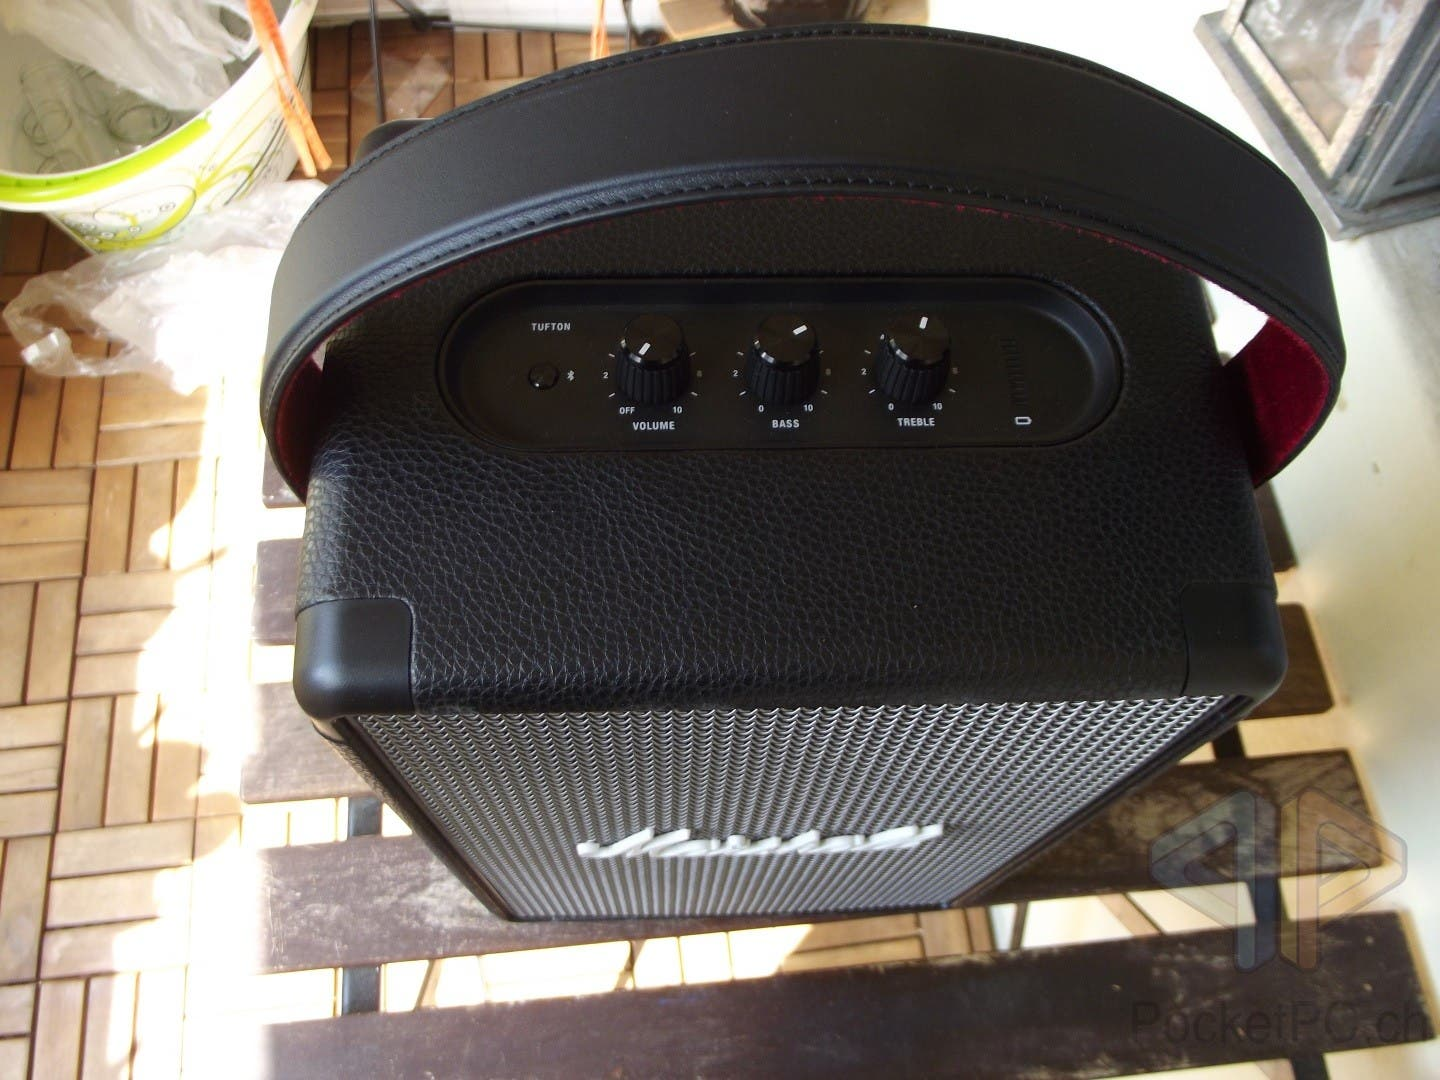 Review-Marshall-Tufton-Bluetooth-Speaker-im-Test